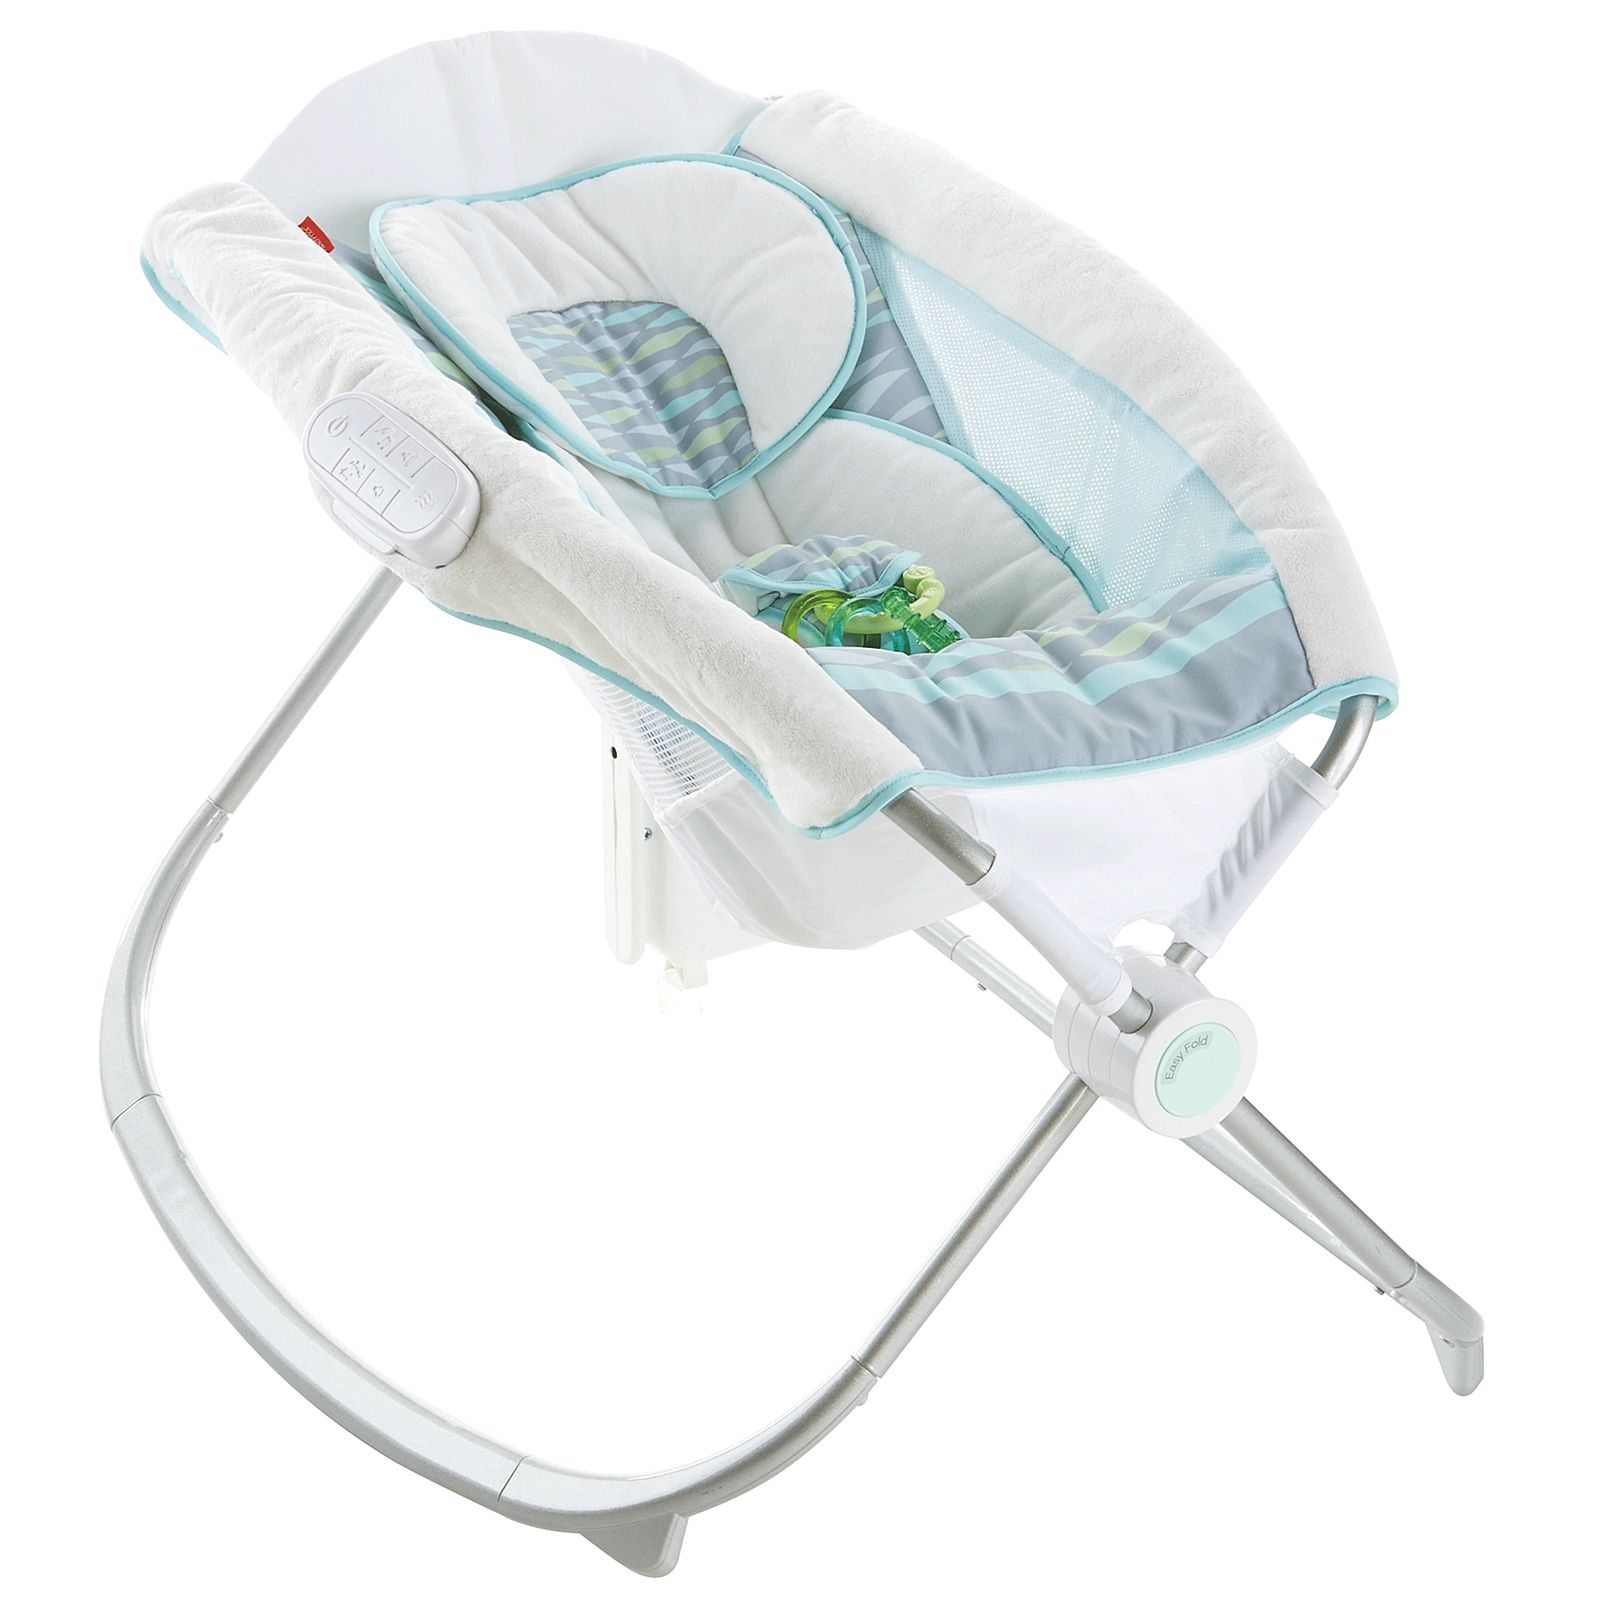 Soothing River Deluxe Newborn Auto Rock N Play Sleeper With Smartconnect Cmp93 Fisher Price